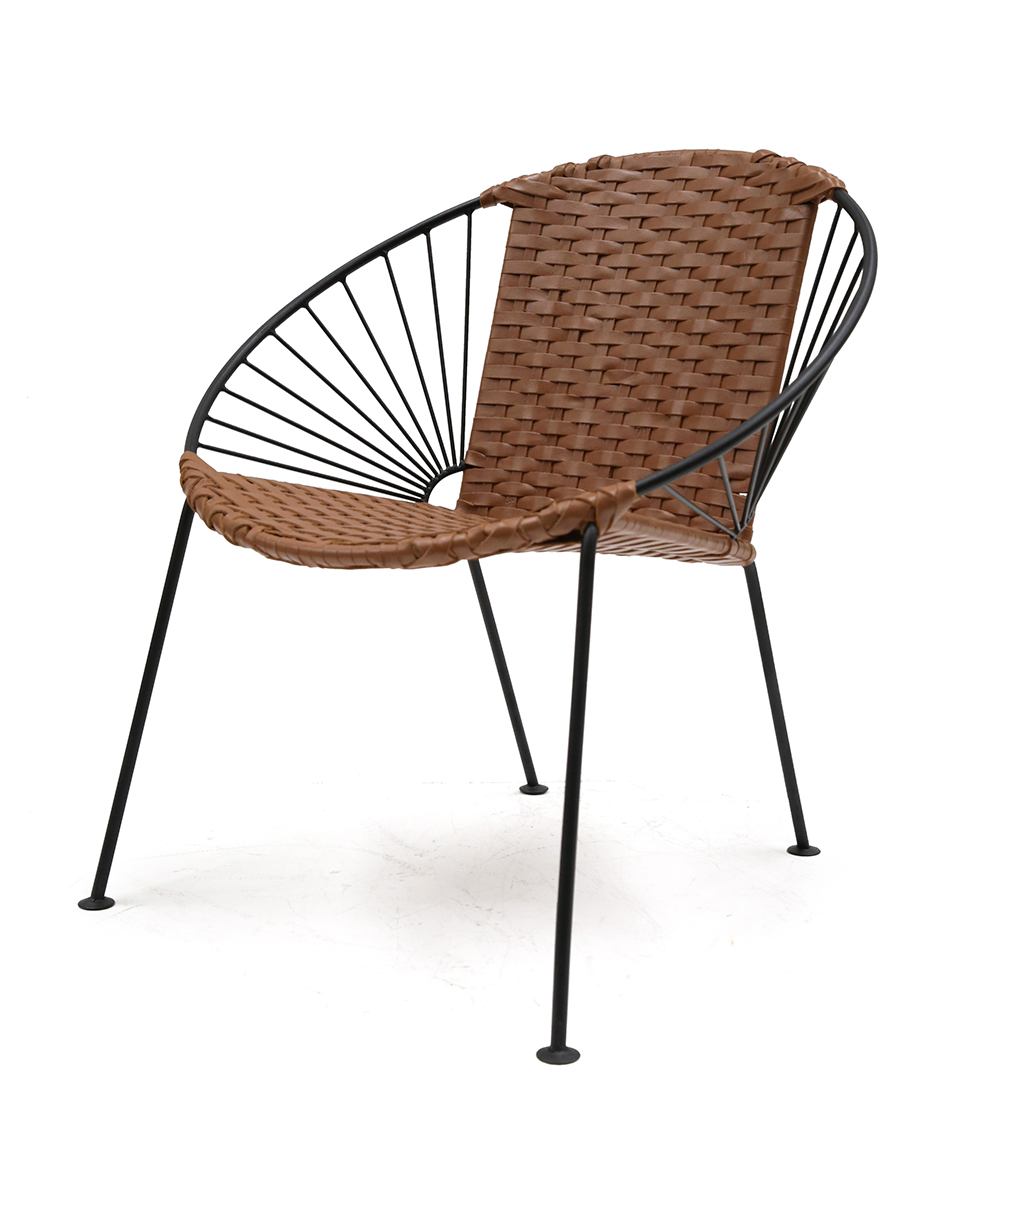 Outstanding Mexa Outdoor Furniture Pdpeps Interior Chair Design Pdpepsorg